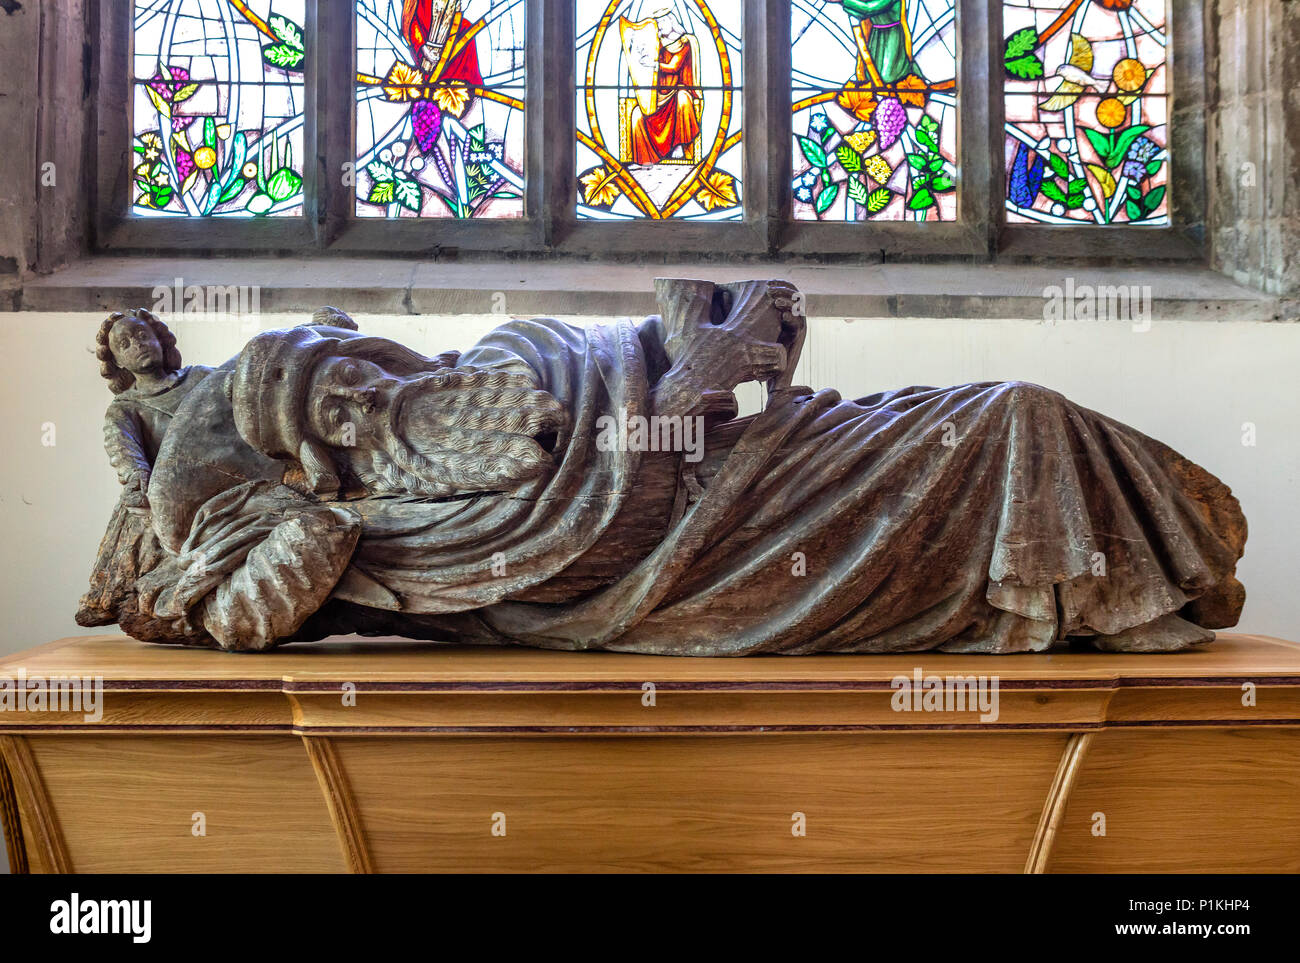 The Jesse, a 15th century wooden carving which once formed part of a 'Jesse Tree' showing the lineage of Christ from Jesse,  the father of David, Priory Church of St Mary, Abergavenny, Monmouthshire, Wales, UK. - Stock Image